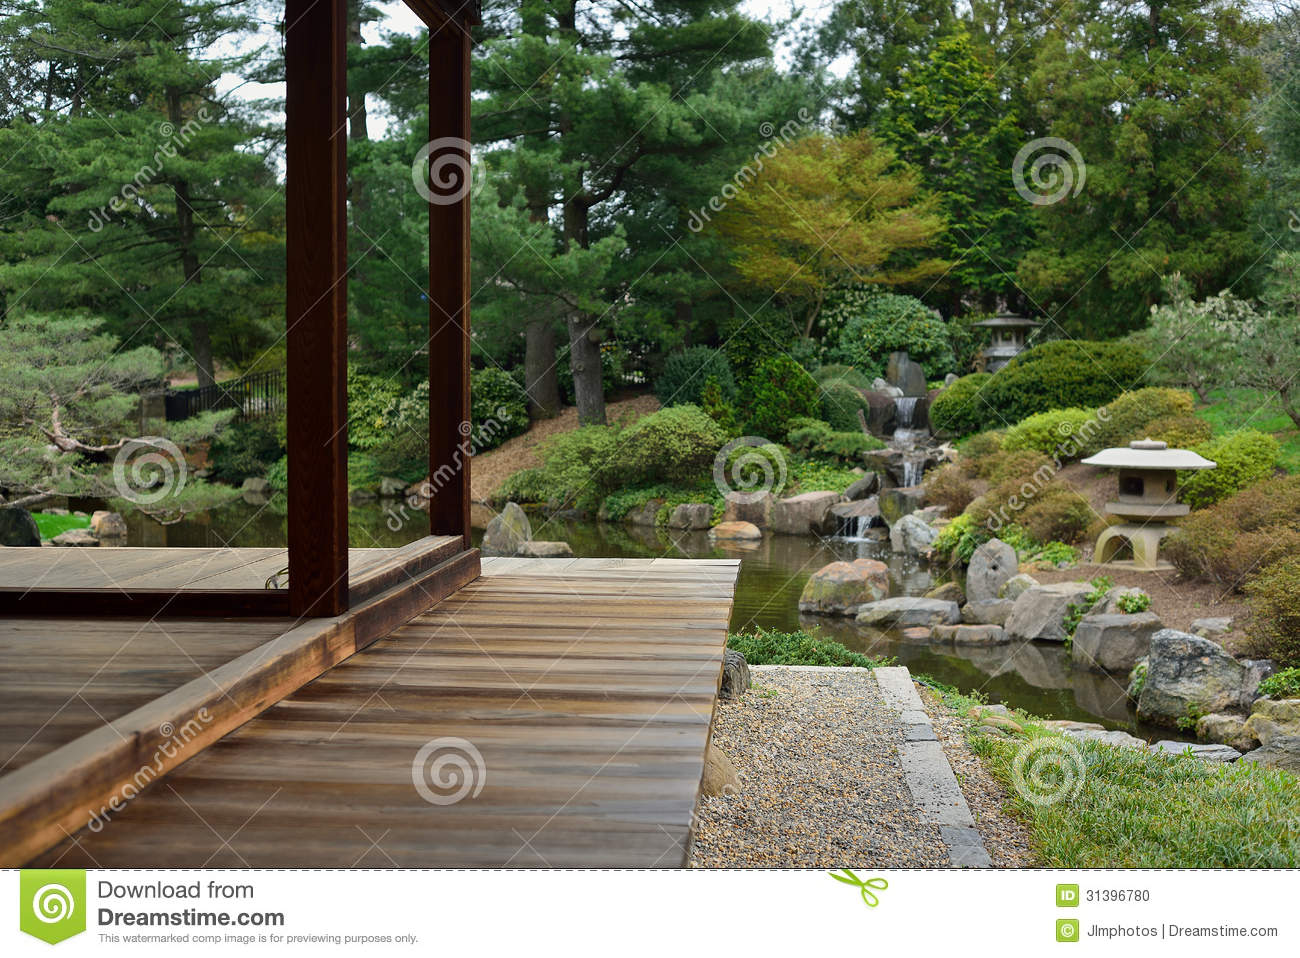 Teak wood deck or porch stock photo image 31396780 for Japanese decking garden